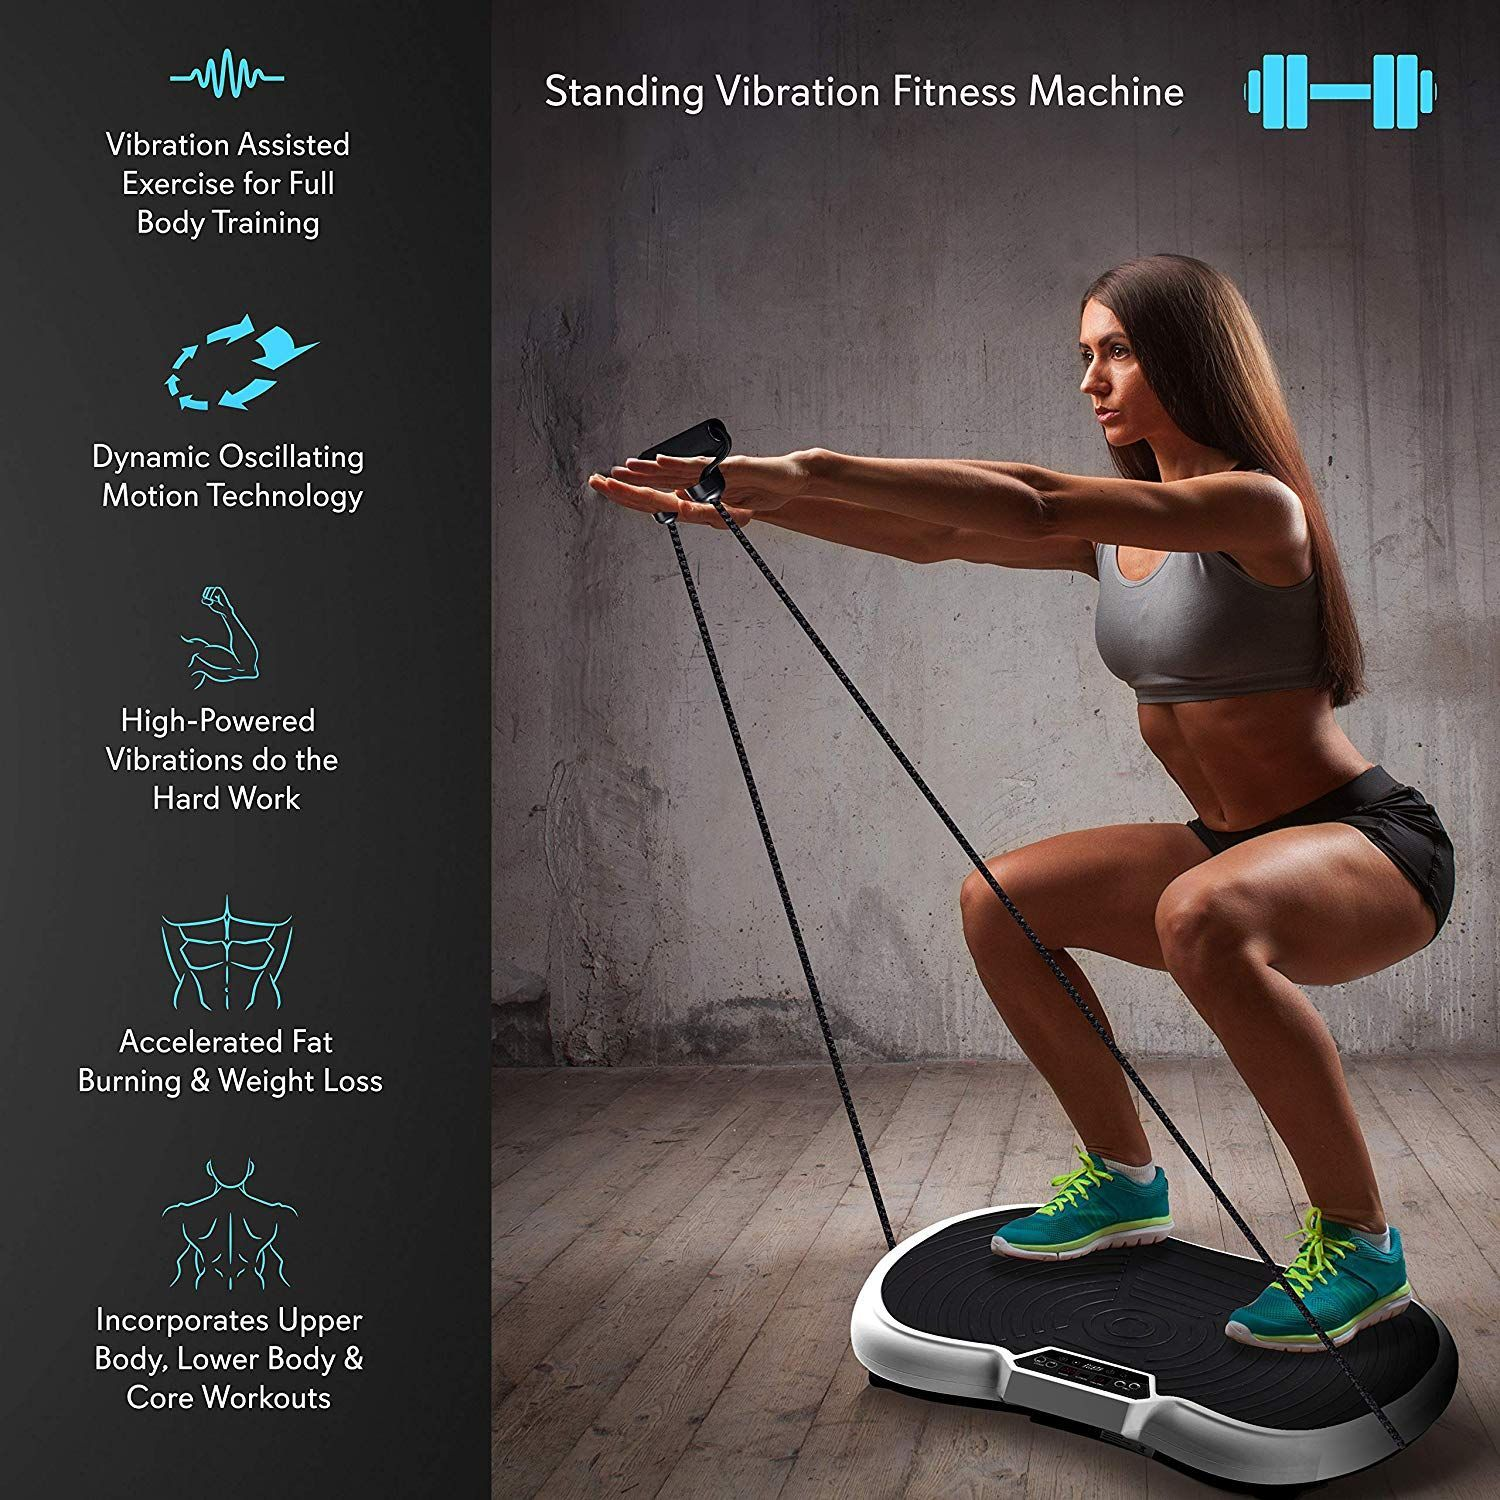 Hurtle Fitness Vibration Platform Workout MachineExercise Equipment For...